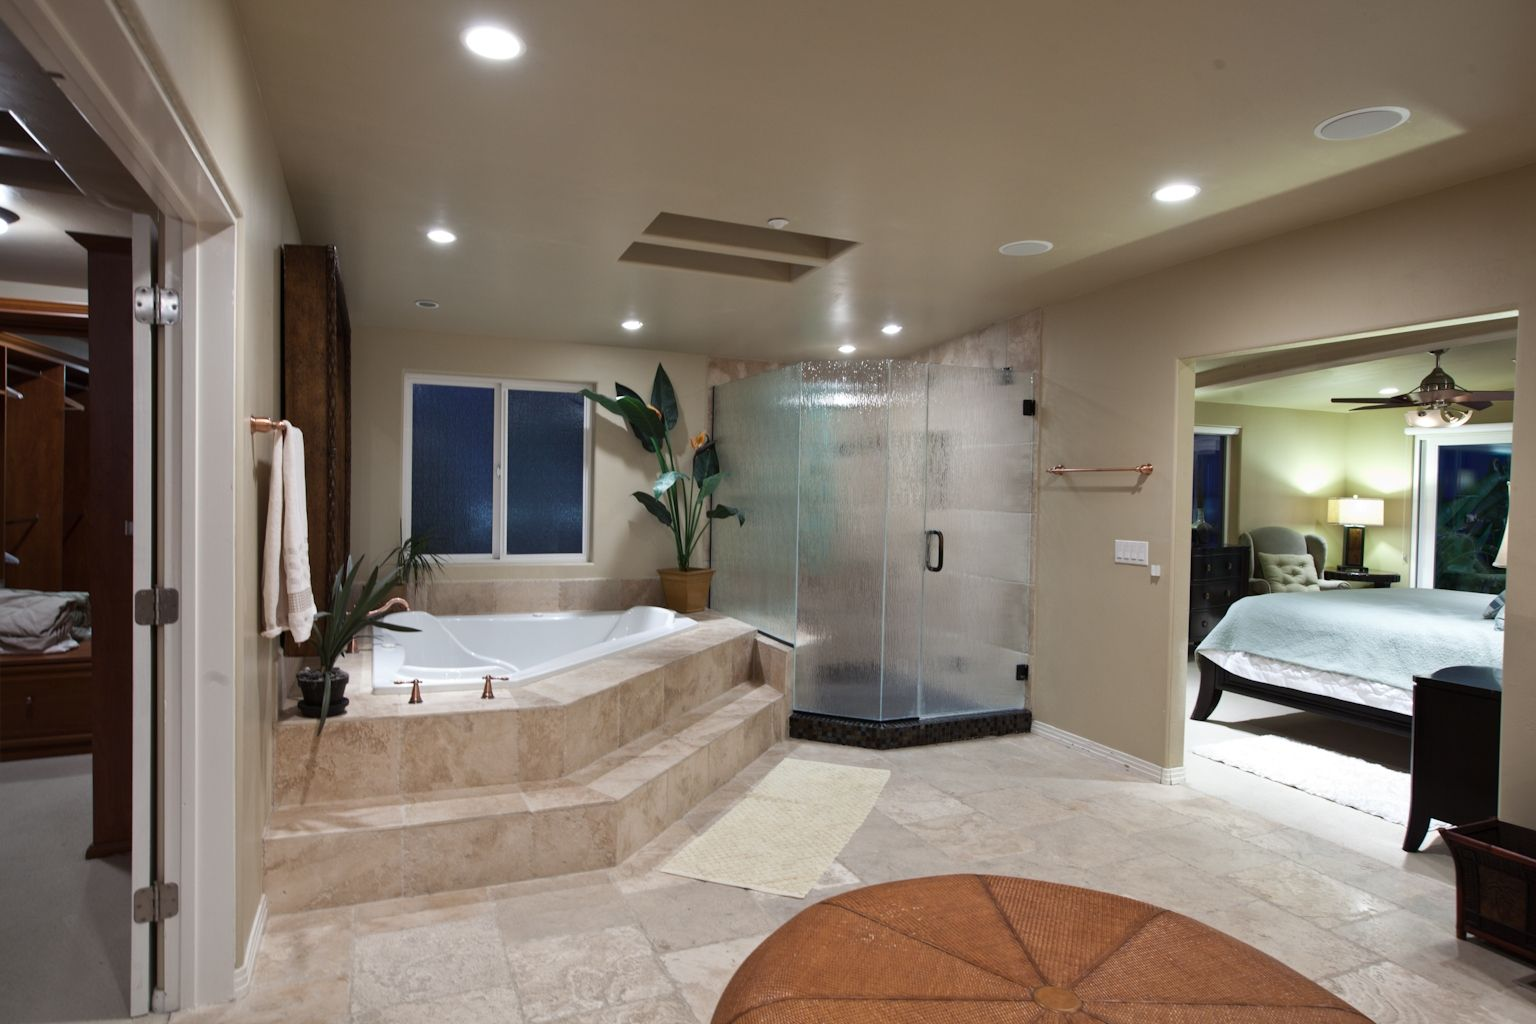 Master bathroom designs master bathroom bedroom interior for Bathroom interior design pakistan